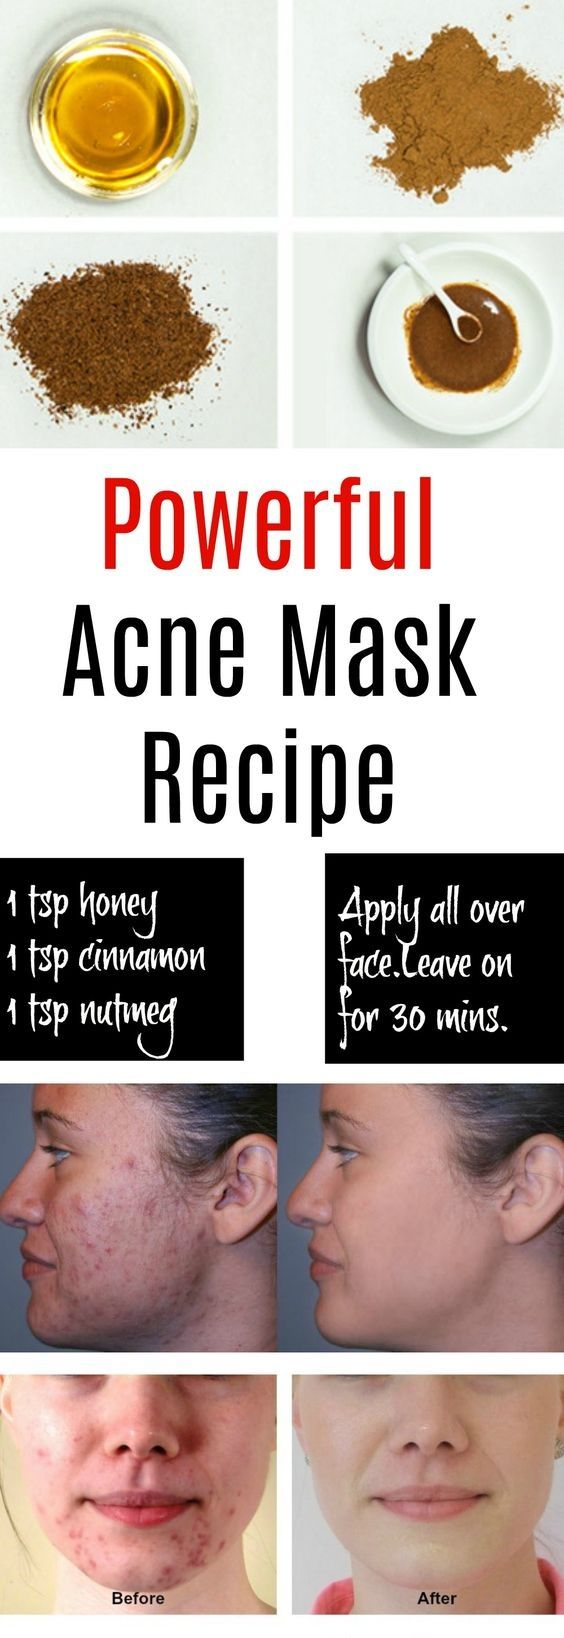 dce562e94c3e943dba27b1751bbc28b5 - How To Get Rid Of Acne Blackheads And Oily Skin